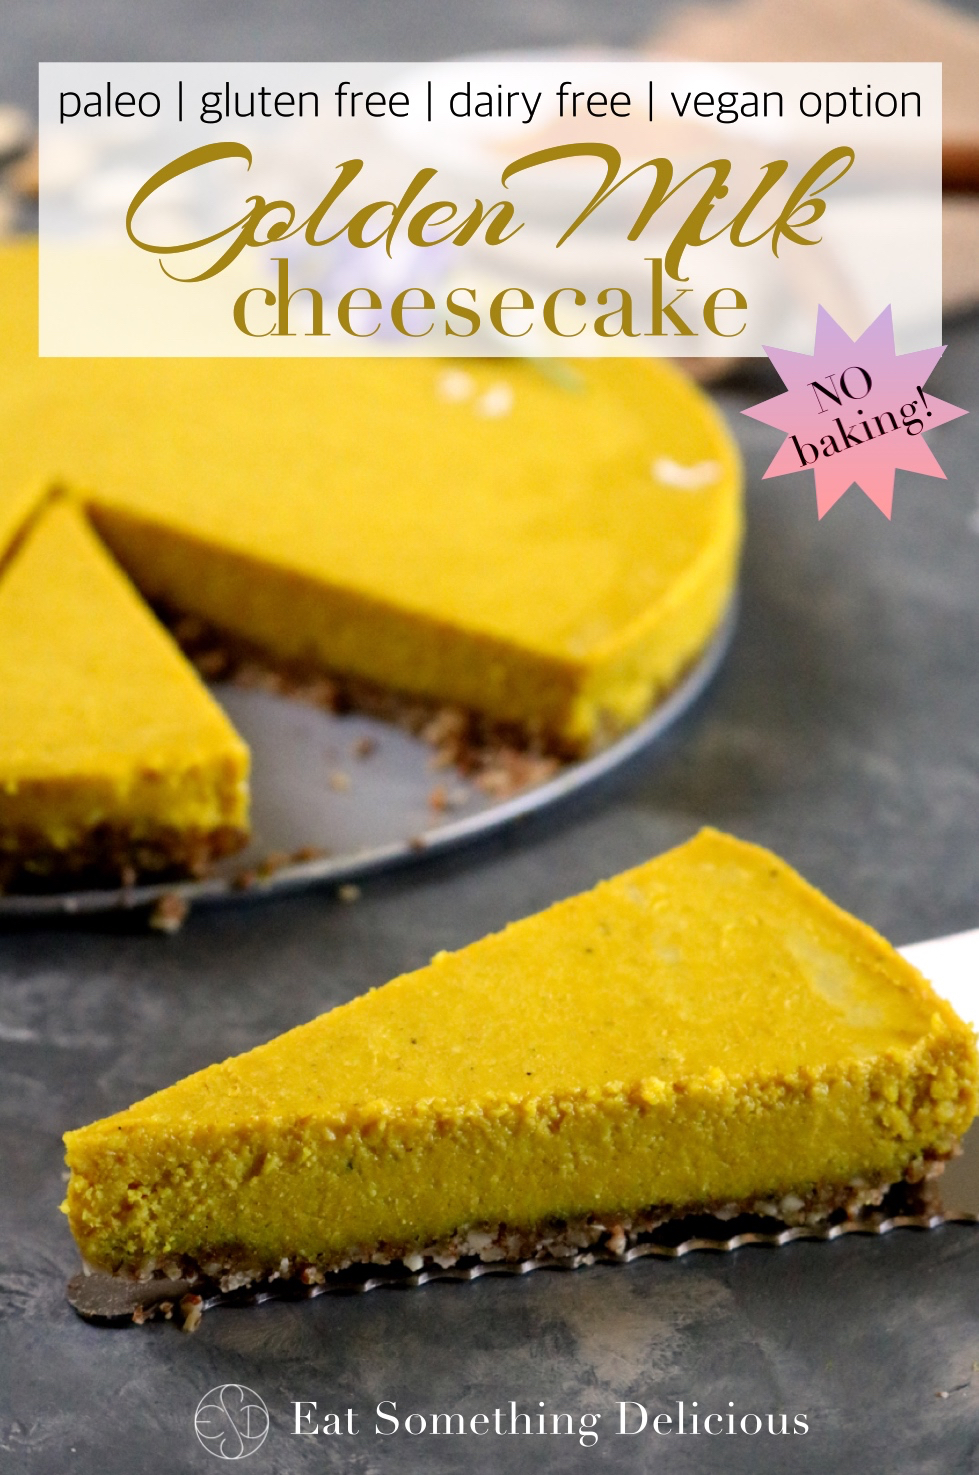 No Bake Golden Milk Cheesecake | No bake golden milk cheesecake is packed with delicious spices and uses a creamy cashew based filling to make it dairy free. Gluten free/paleo/vegan option. | eatsomethingdelicious.com